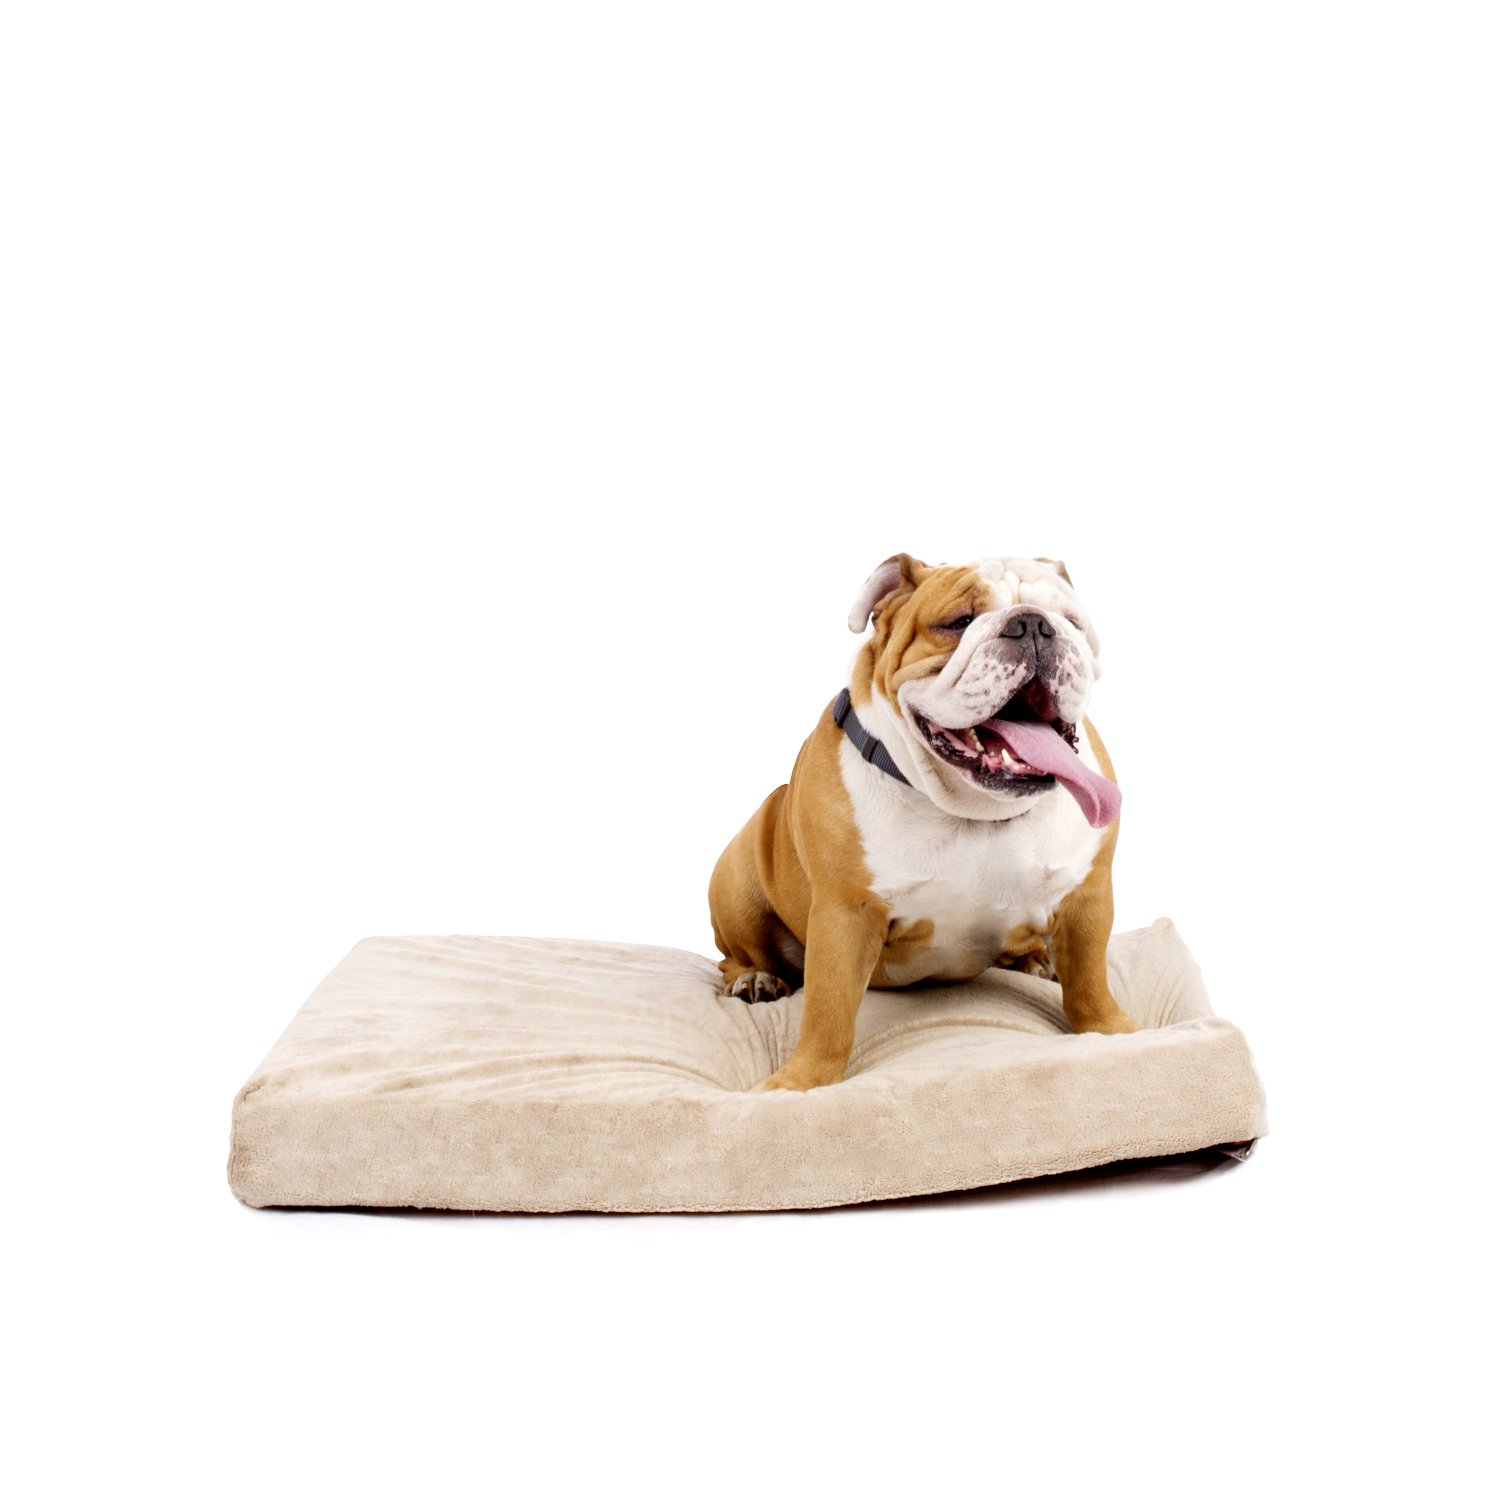 Best Orthopedic Dog Beds for Dogs